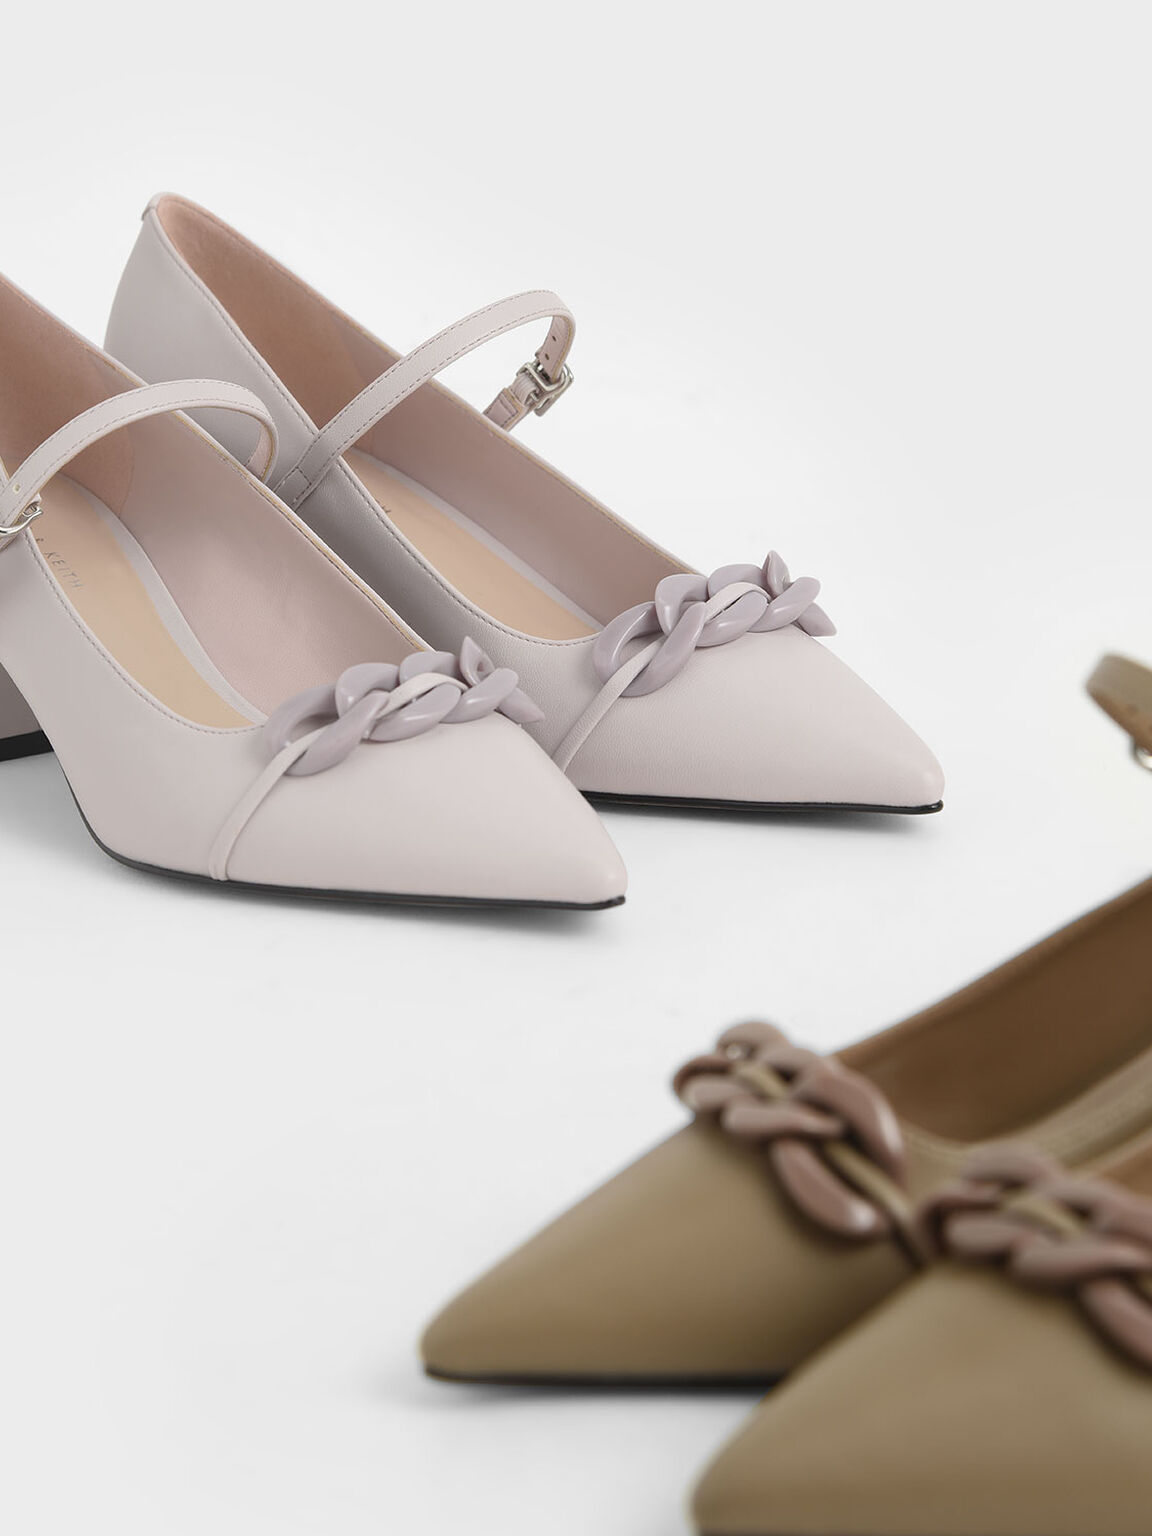 Chain Link Mary Jane Court Shoes, Taupe, hi-res